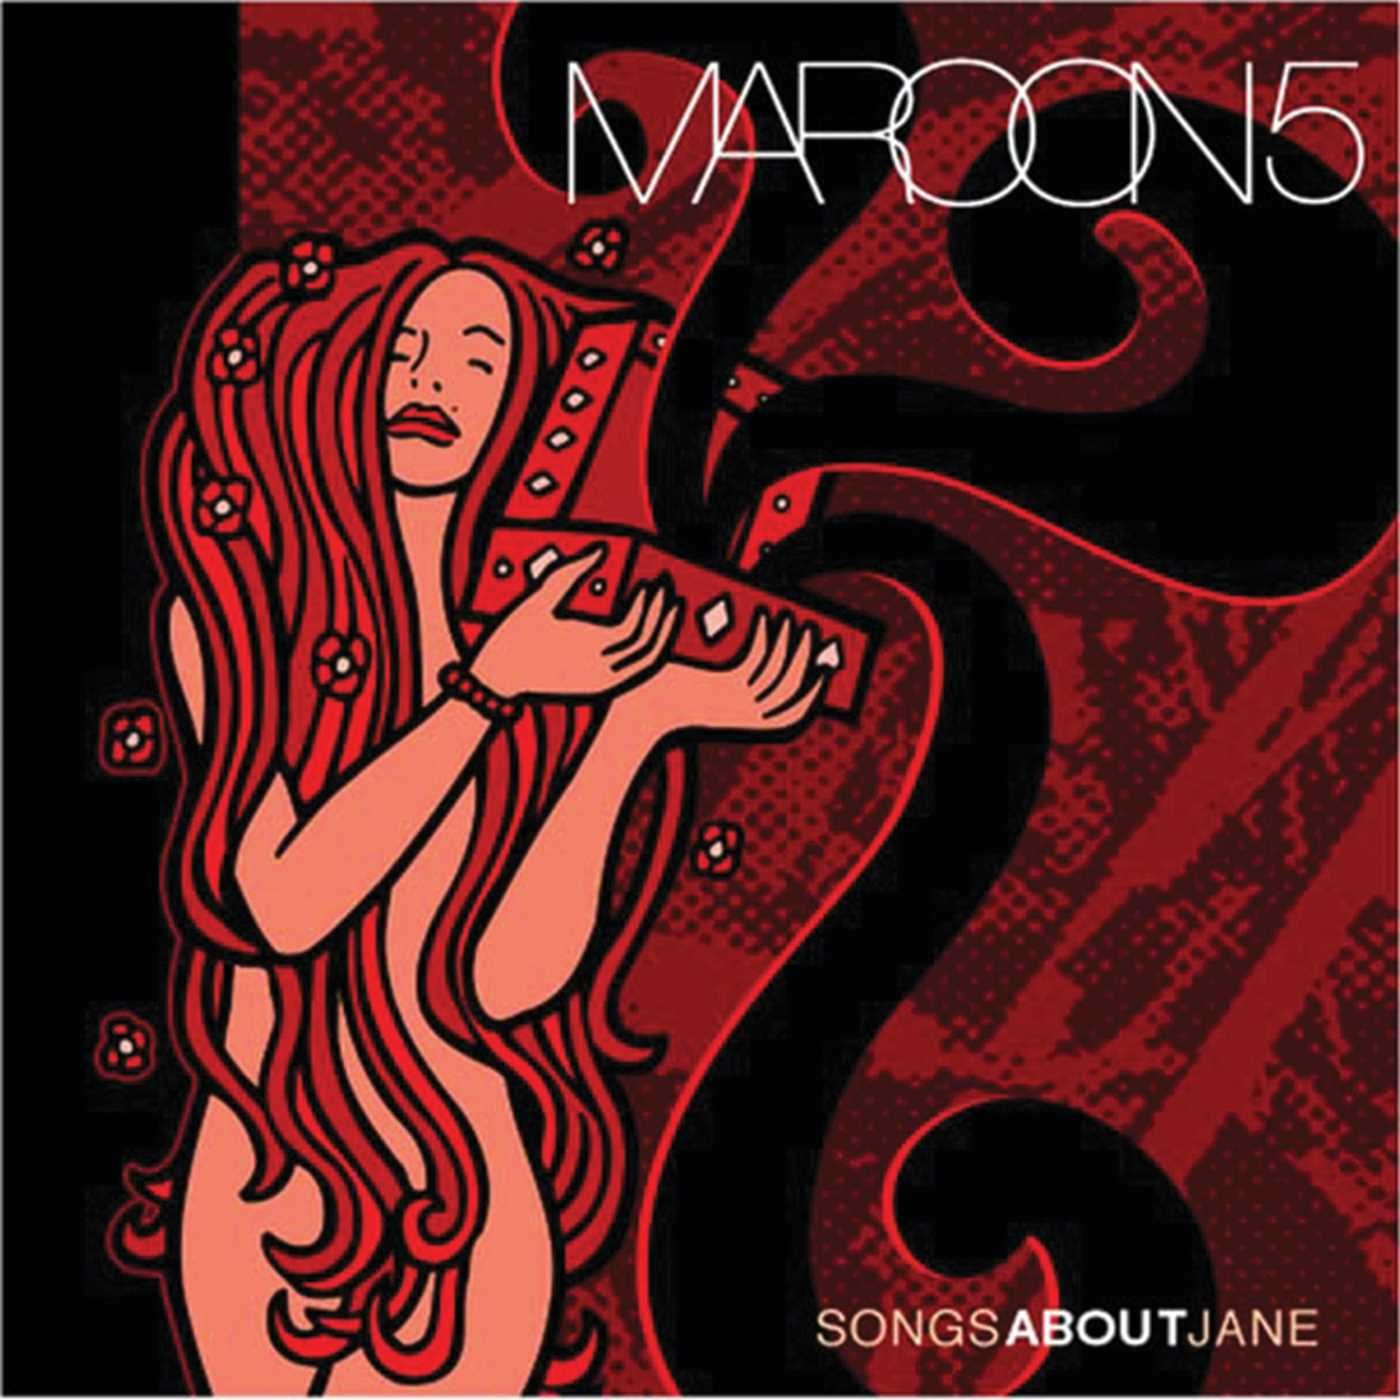 maroon 5 songs about jane album free mp3 download